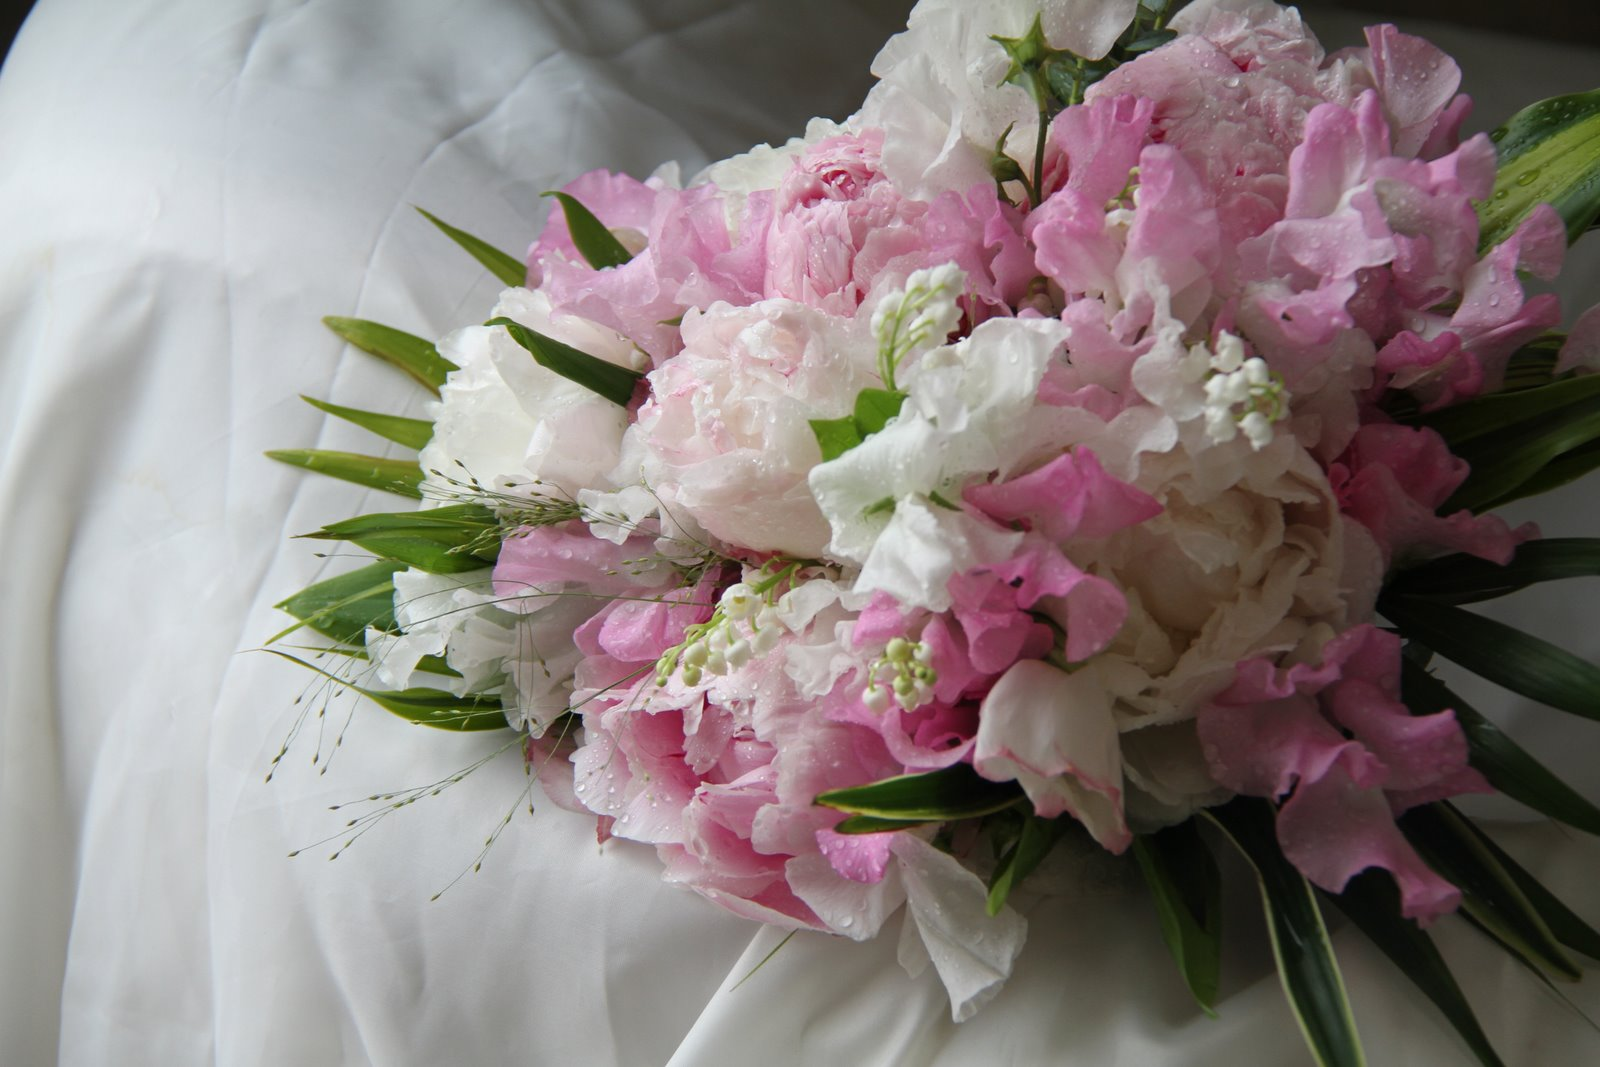 Sweet Peas U0026 Peonies Yummy. Soft And Blousy, Gentle And Romantic, Pink And  Ivory Wedding Bouquet